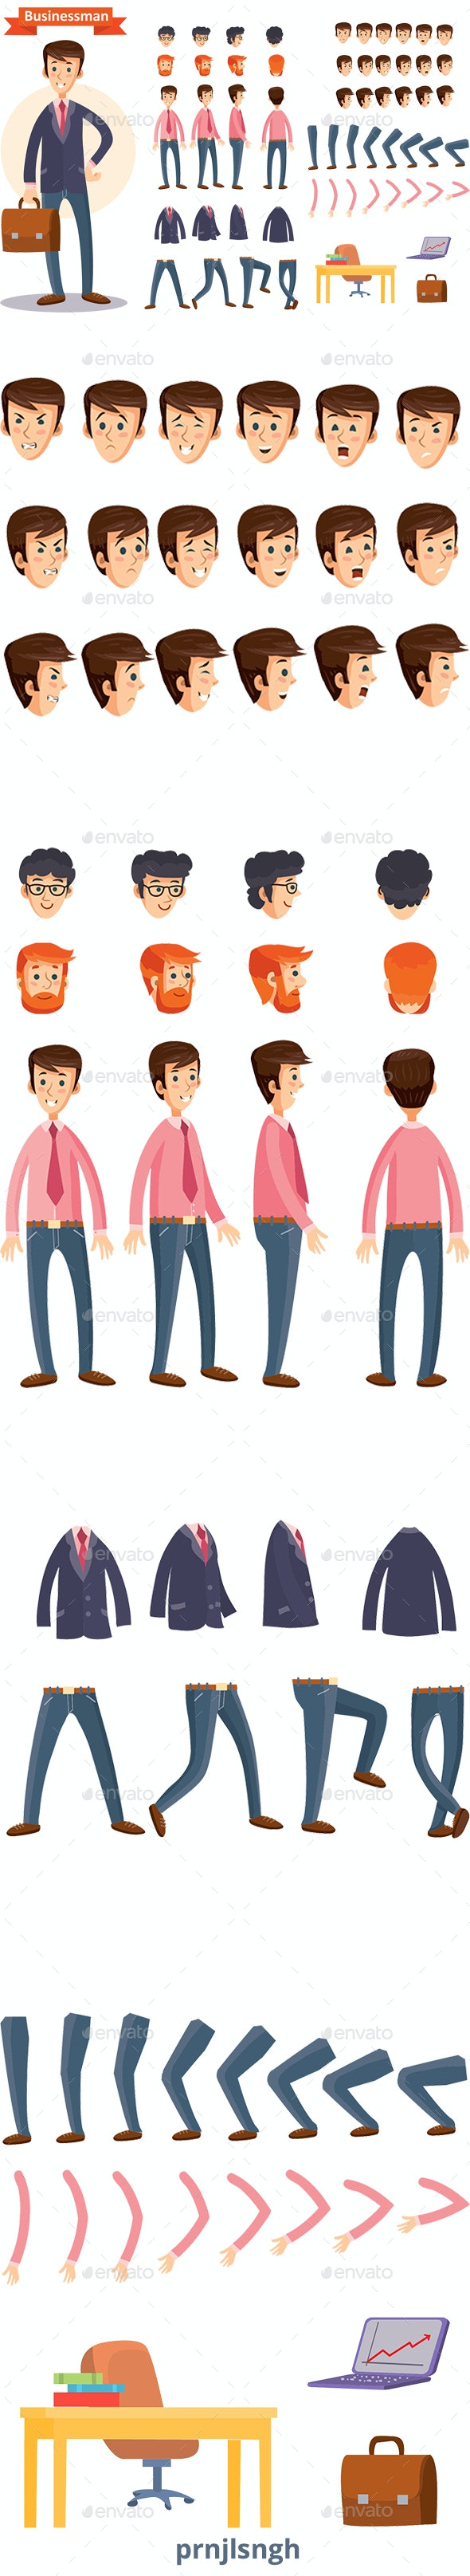 Businessman Vector Animation Set - People Characters